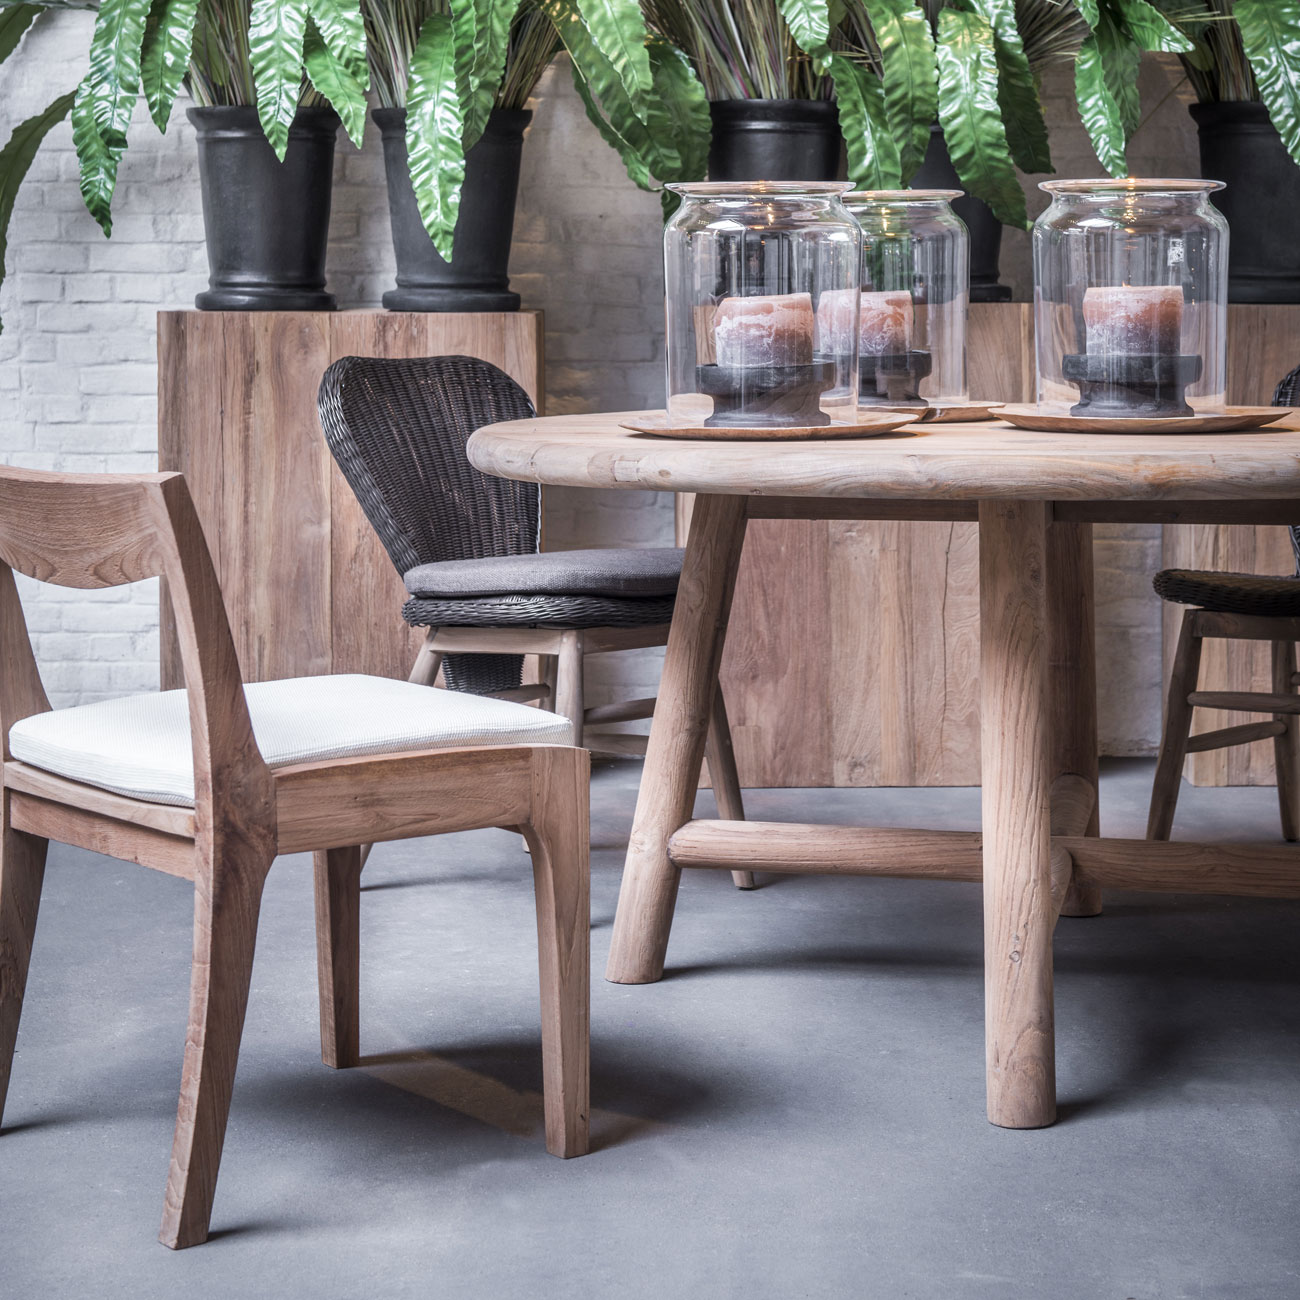 Gommaire Lydia Dining Table Luxury Outdoor Living : gommaire LYDIA dining table 1 from luxury-outdoor-living.co.uk size 1300 x 1300 jpeg 325kB